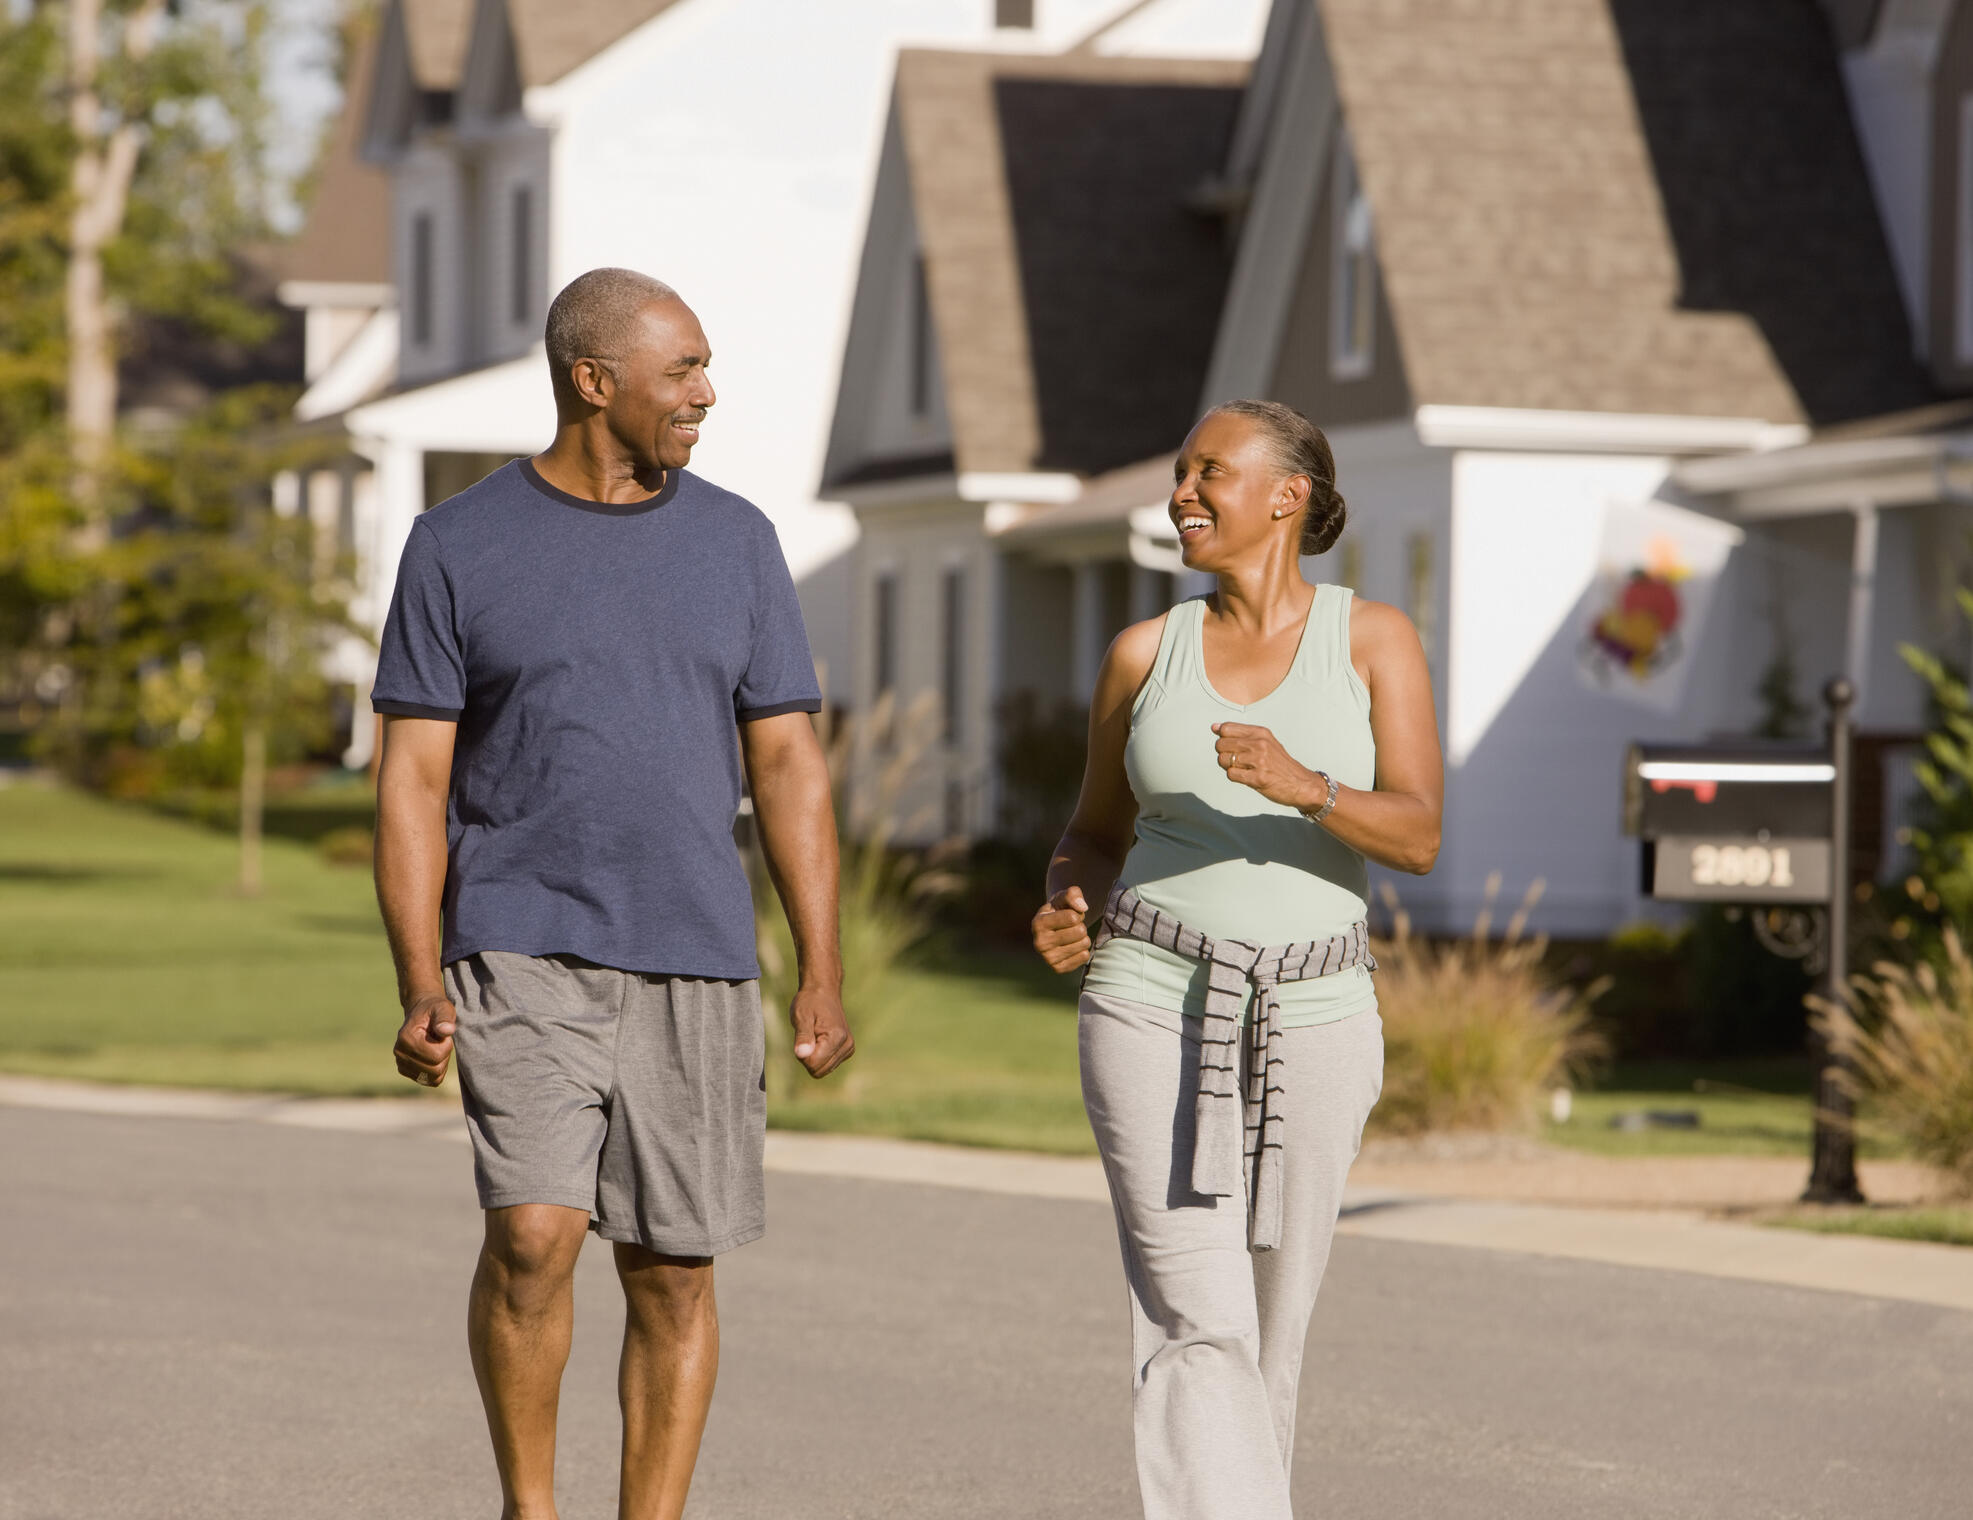 couple going on a walk outdoors